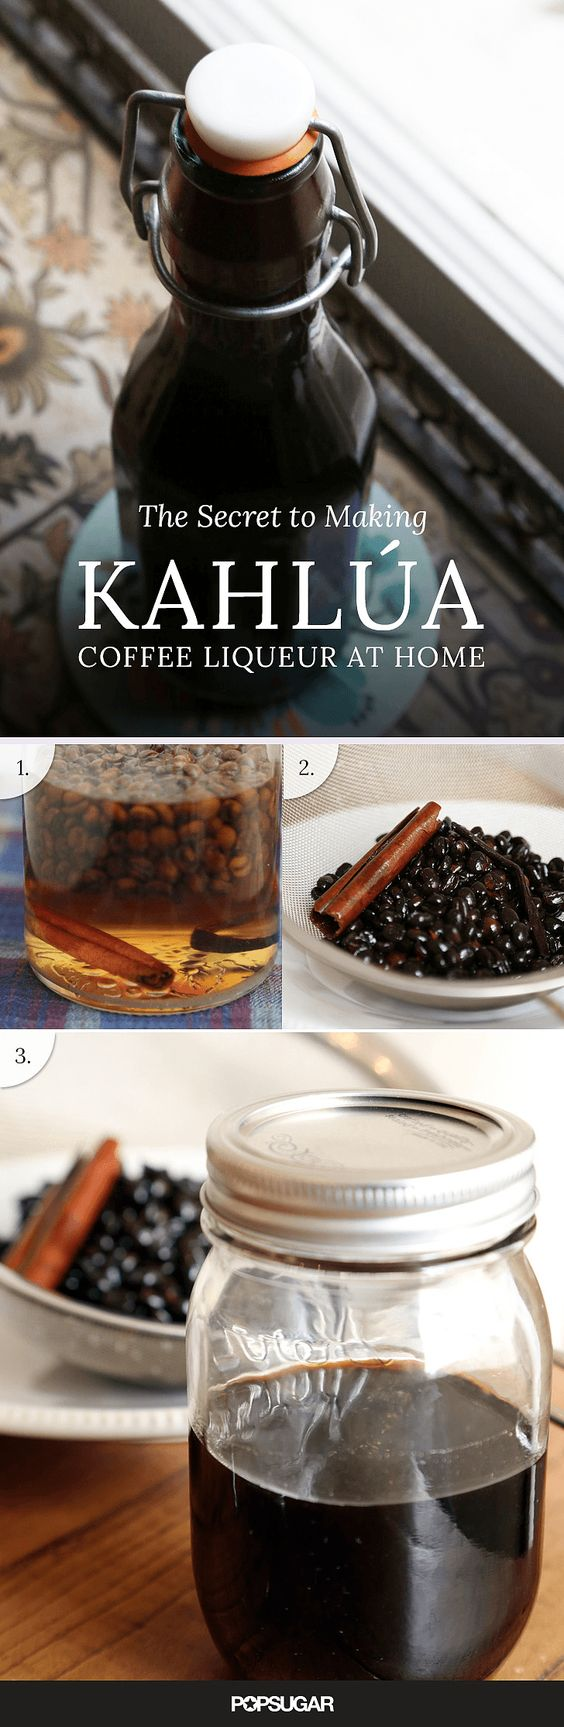 Did you know you can make your own version of Kahlúa at home? It takes three weeks for the coffee beans to infuse the vodka and rum mixture, so you'll want to prepare this ahead of time if you plan to use or give it as a gift.